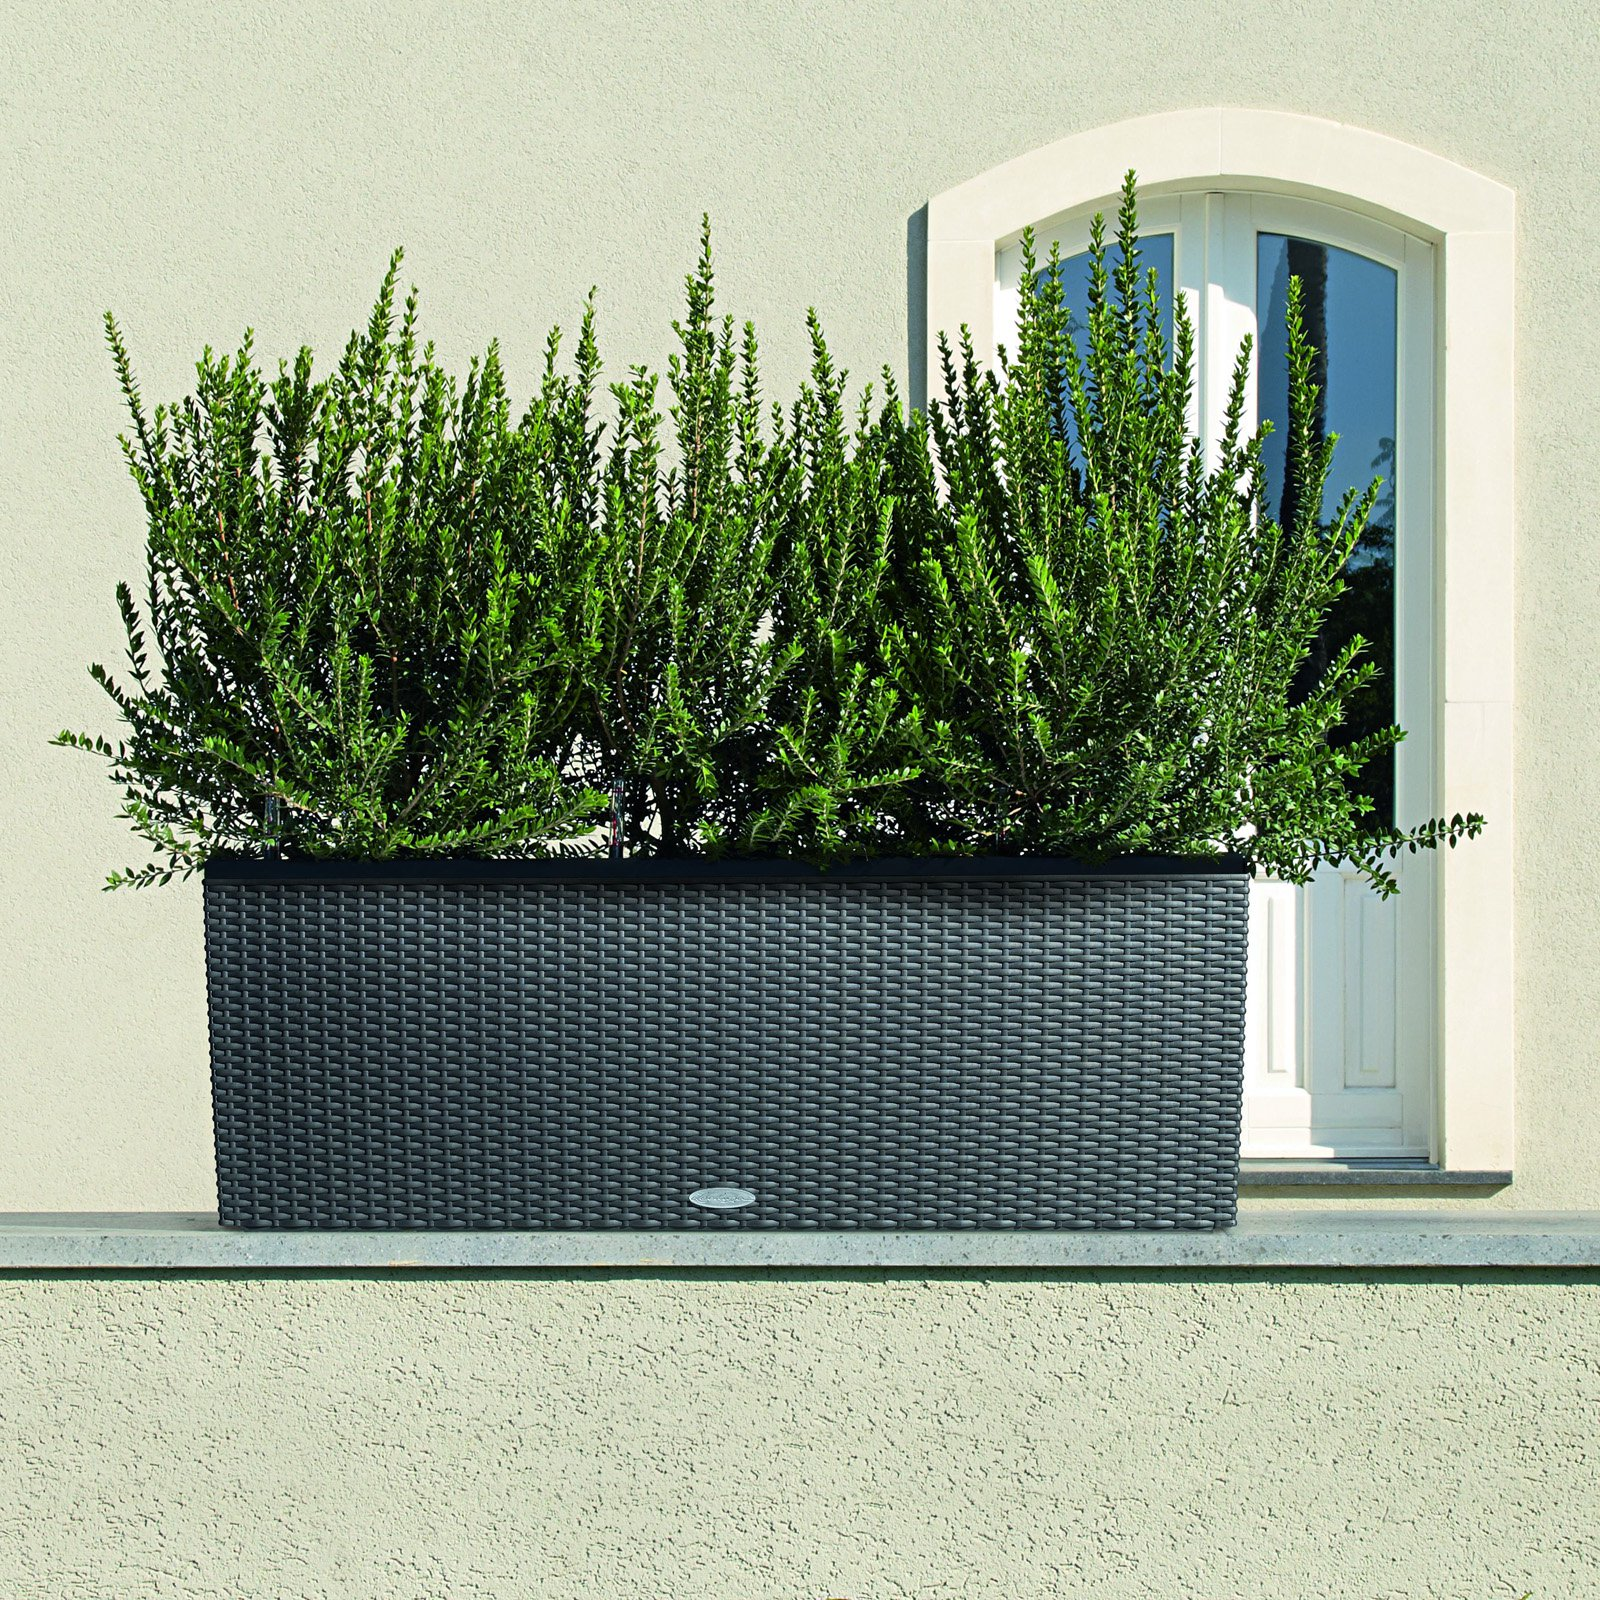 Rectangle Lechuza Trio Cottage 30 Self-Watering Resin Planter by LECHUZA